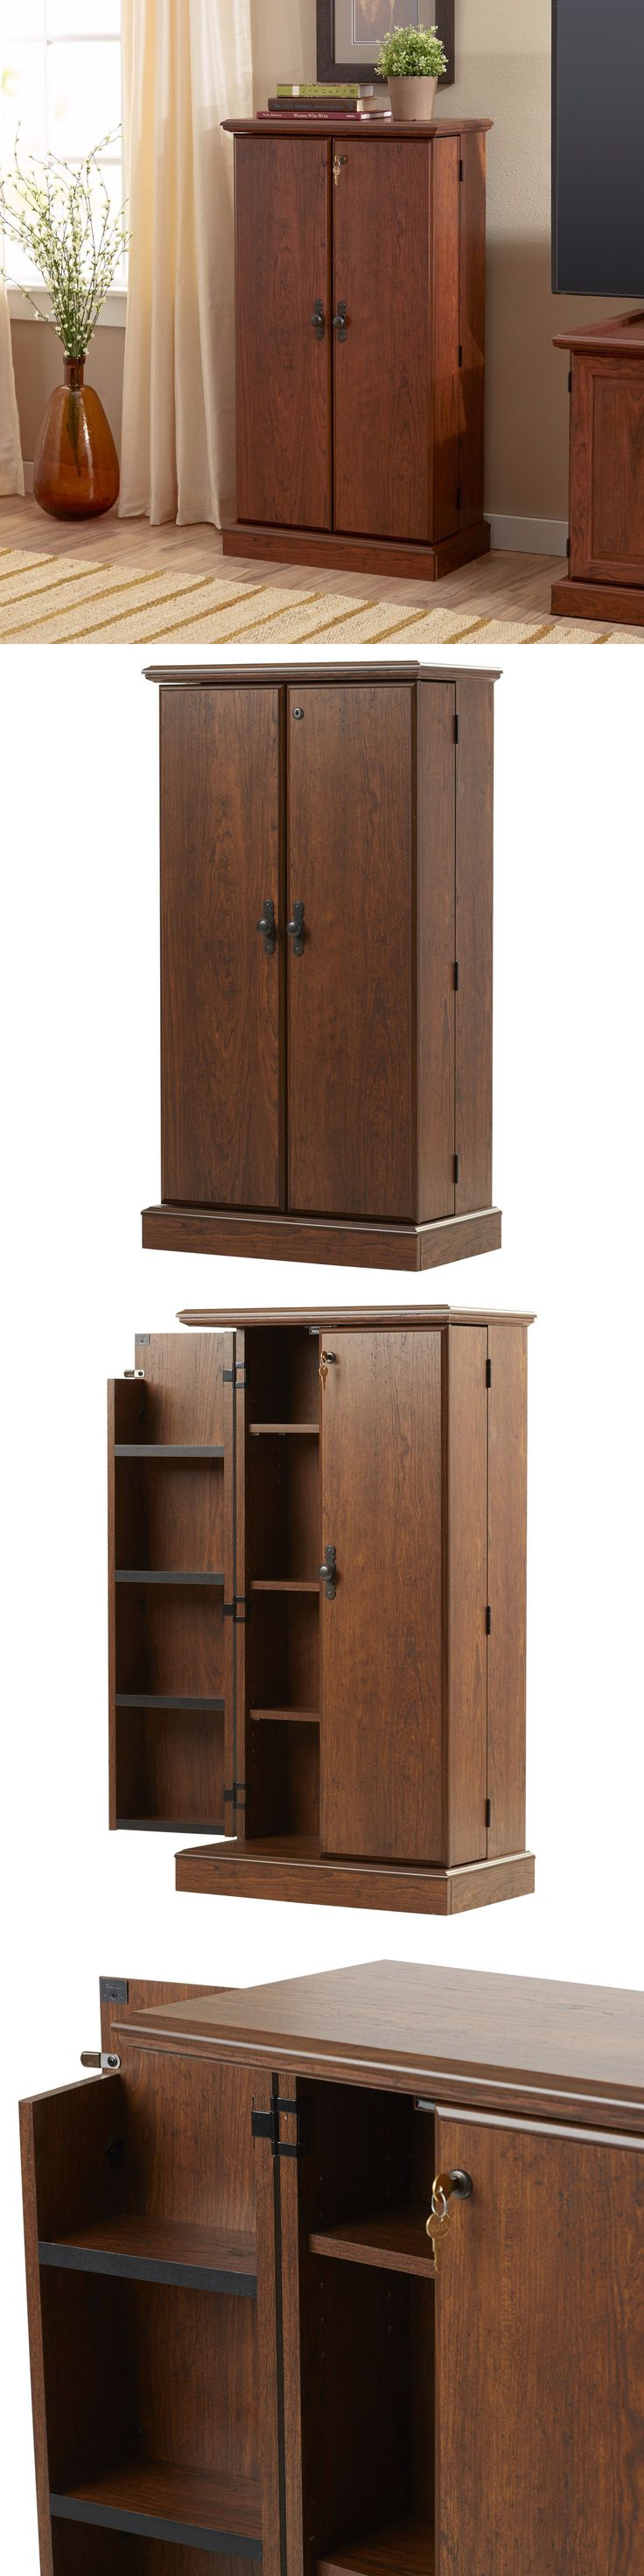 Cd And Video Racks 22653: Media Storage Cabinet With Doors Multimedia Home Dvd  Shelves Tower